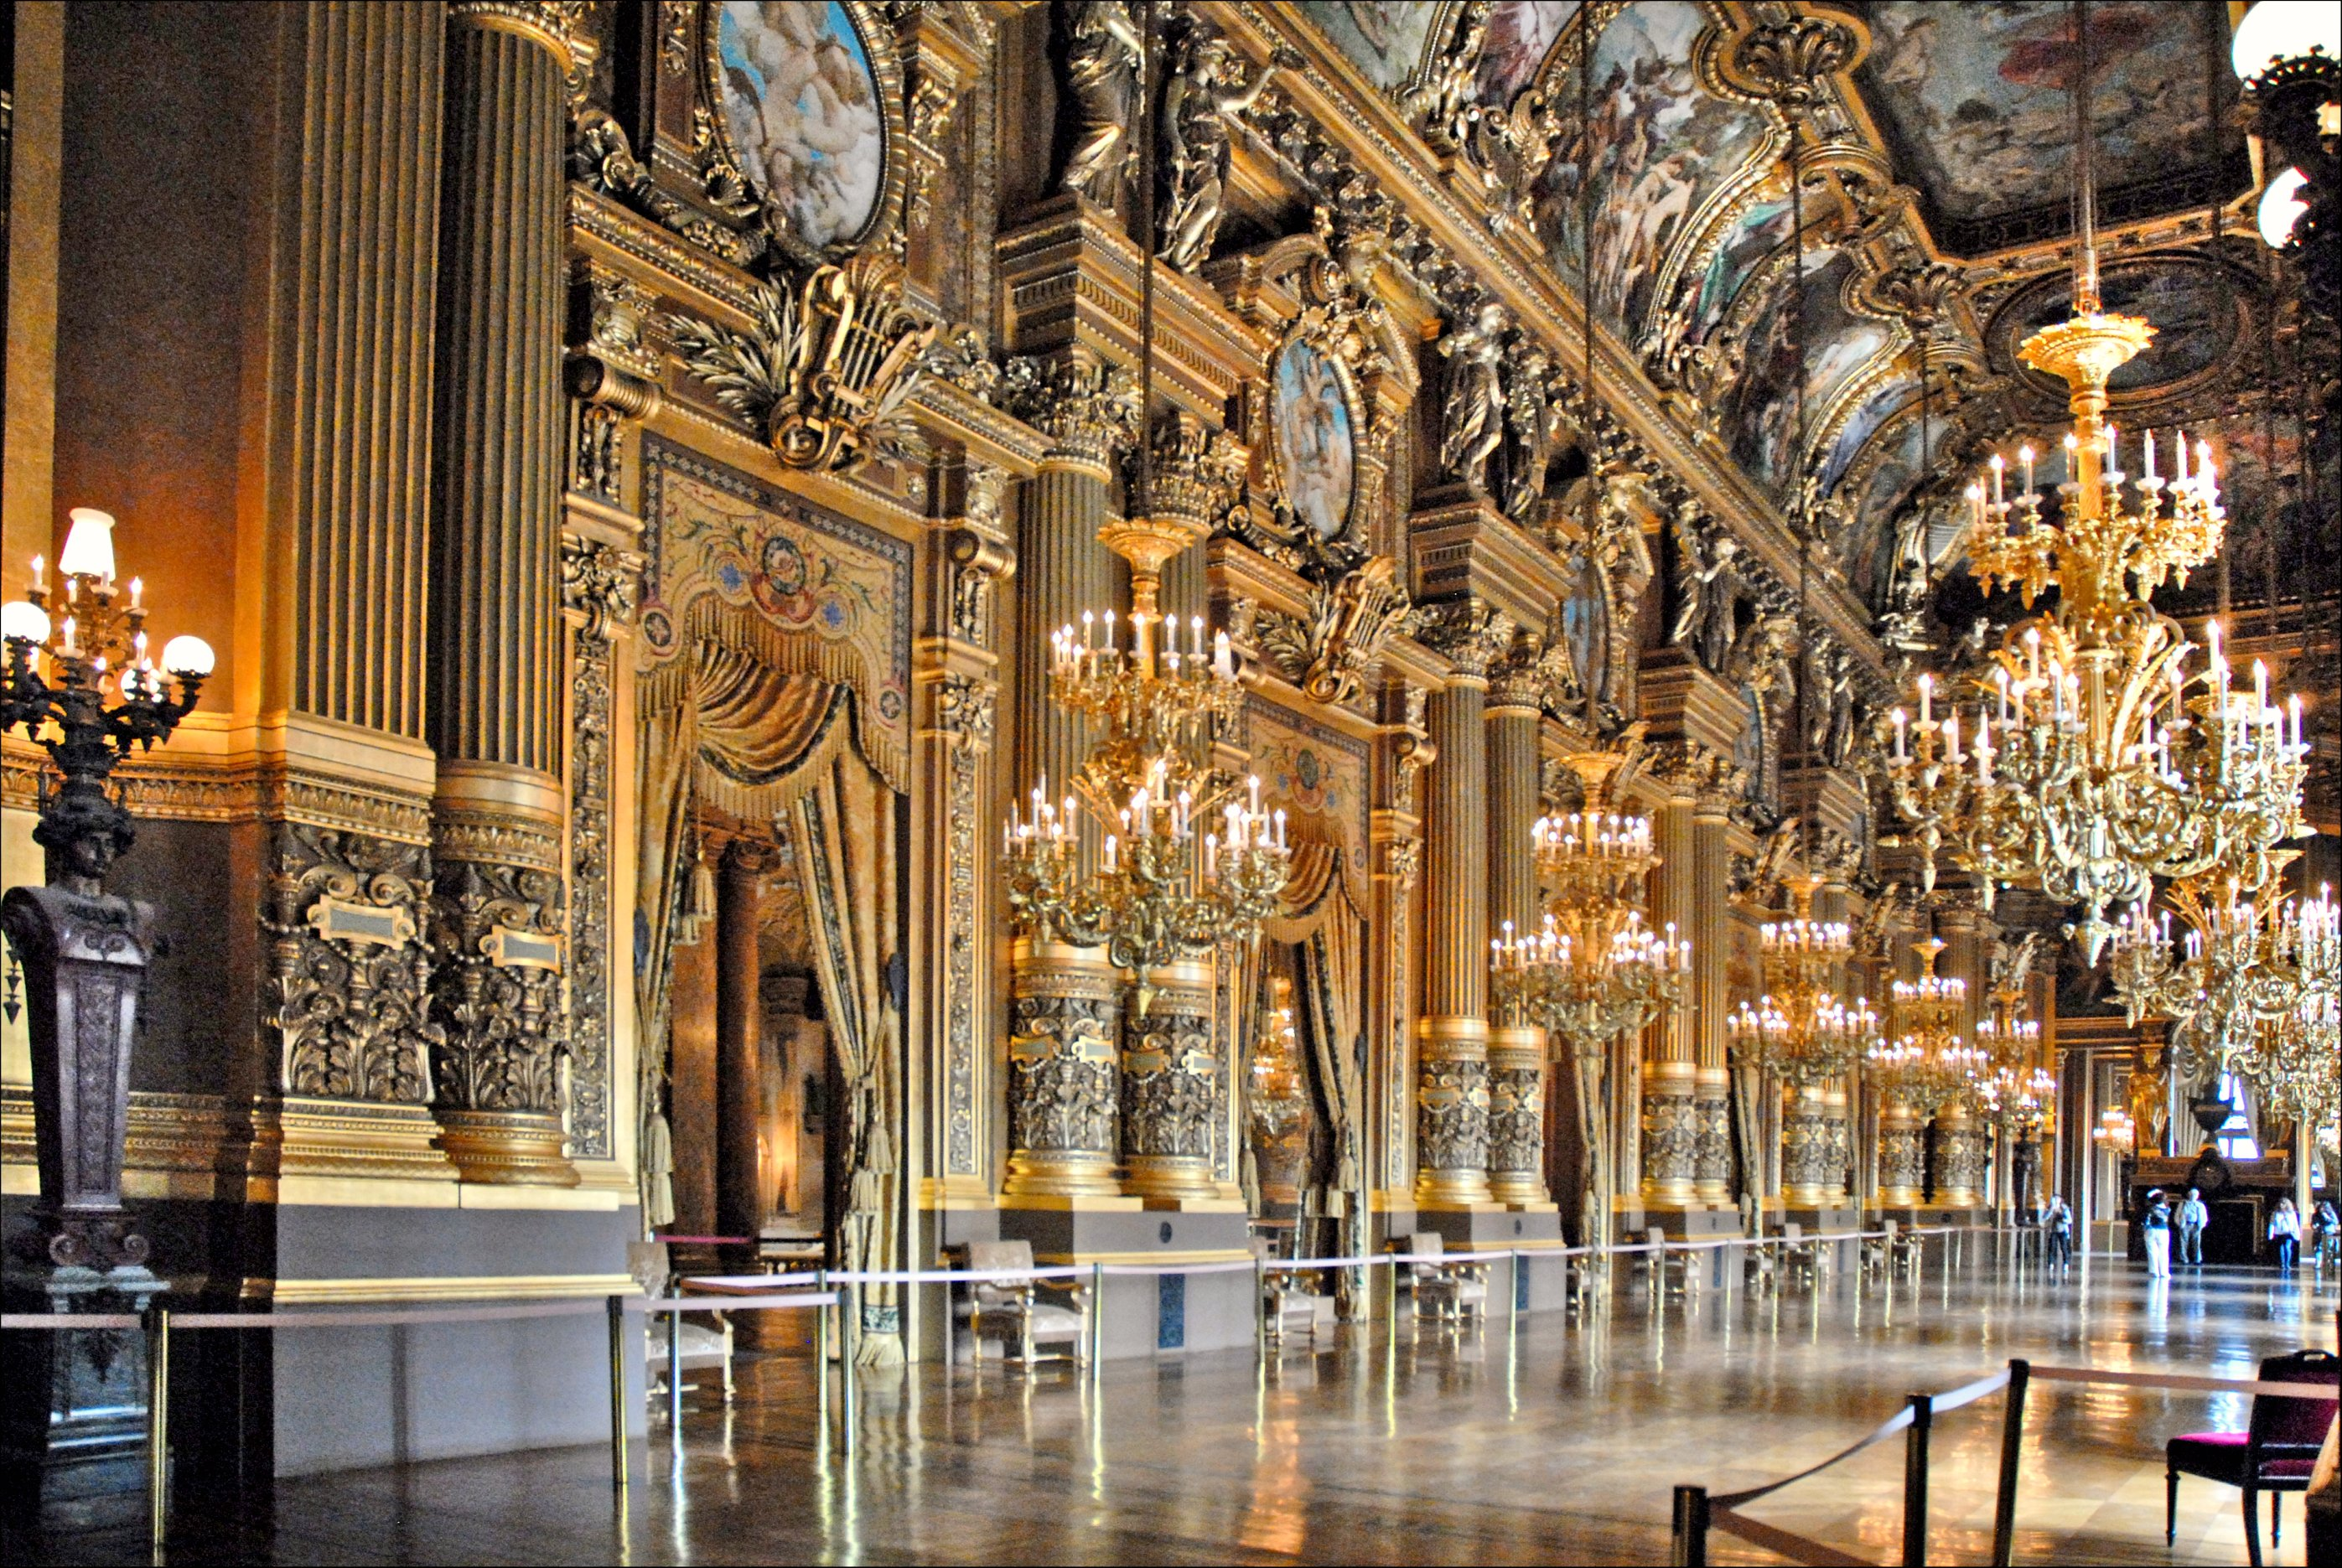 Le grand foyer de l 39 op ra garnier paris flickr photo for Le salon des miroirs paris